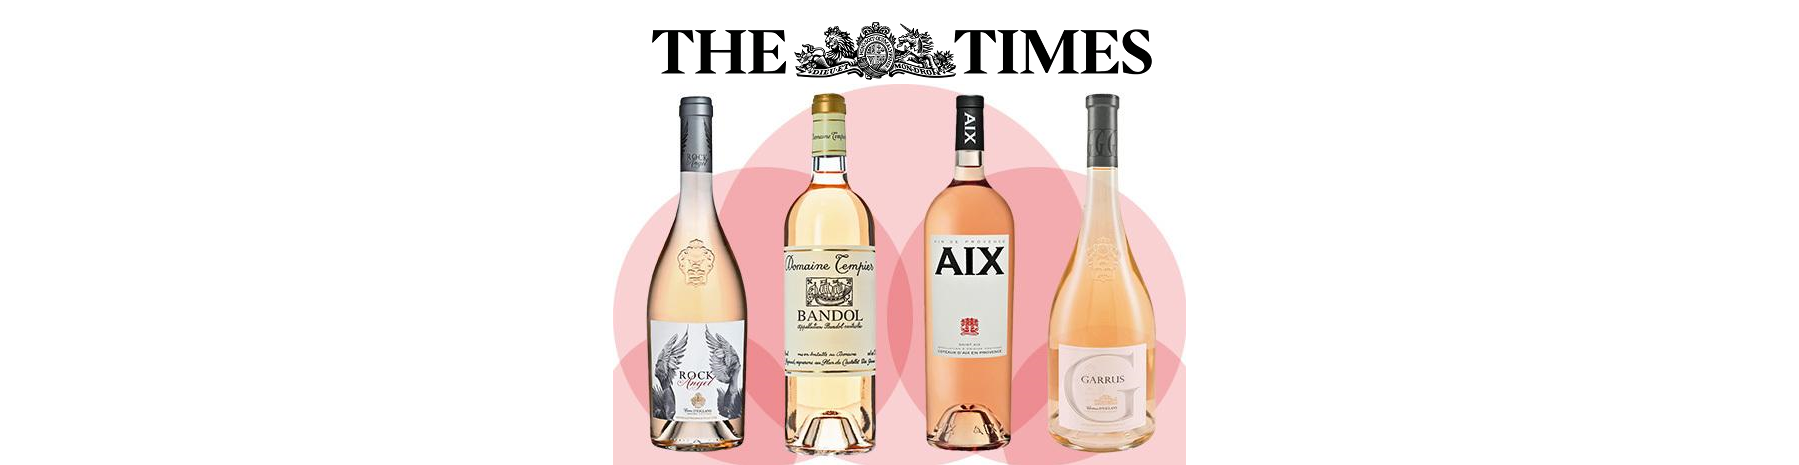 "THE TIMES - ""Drink Pink! The 30 Best Rosé Wines"" Jane MacQuitty"